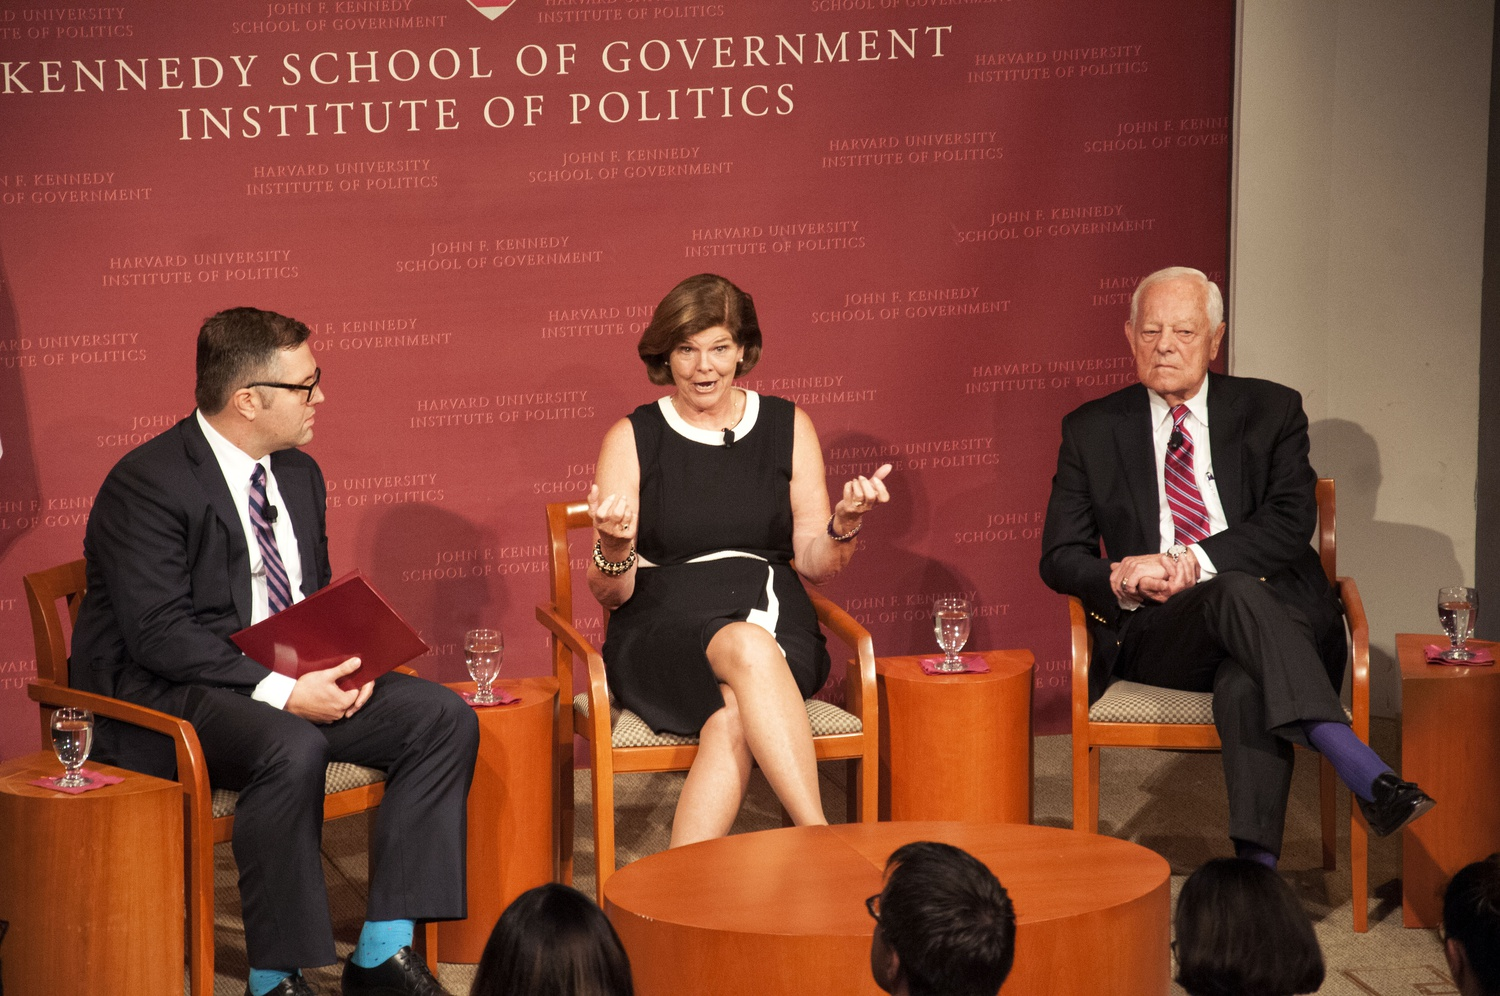 Former White House Correspondent and current IOP fellow Ann Compton speaks with former CBS reporter Bob L. Schieffer and moderator Nicco Mele on media's changing role in the 2016 election.